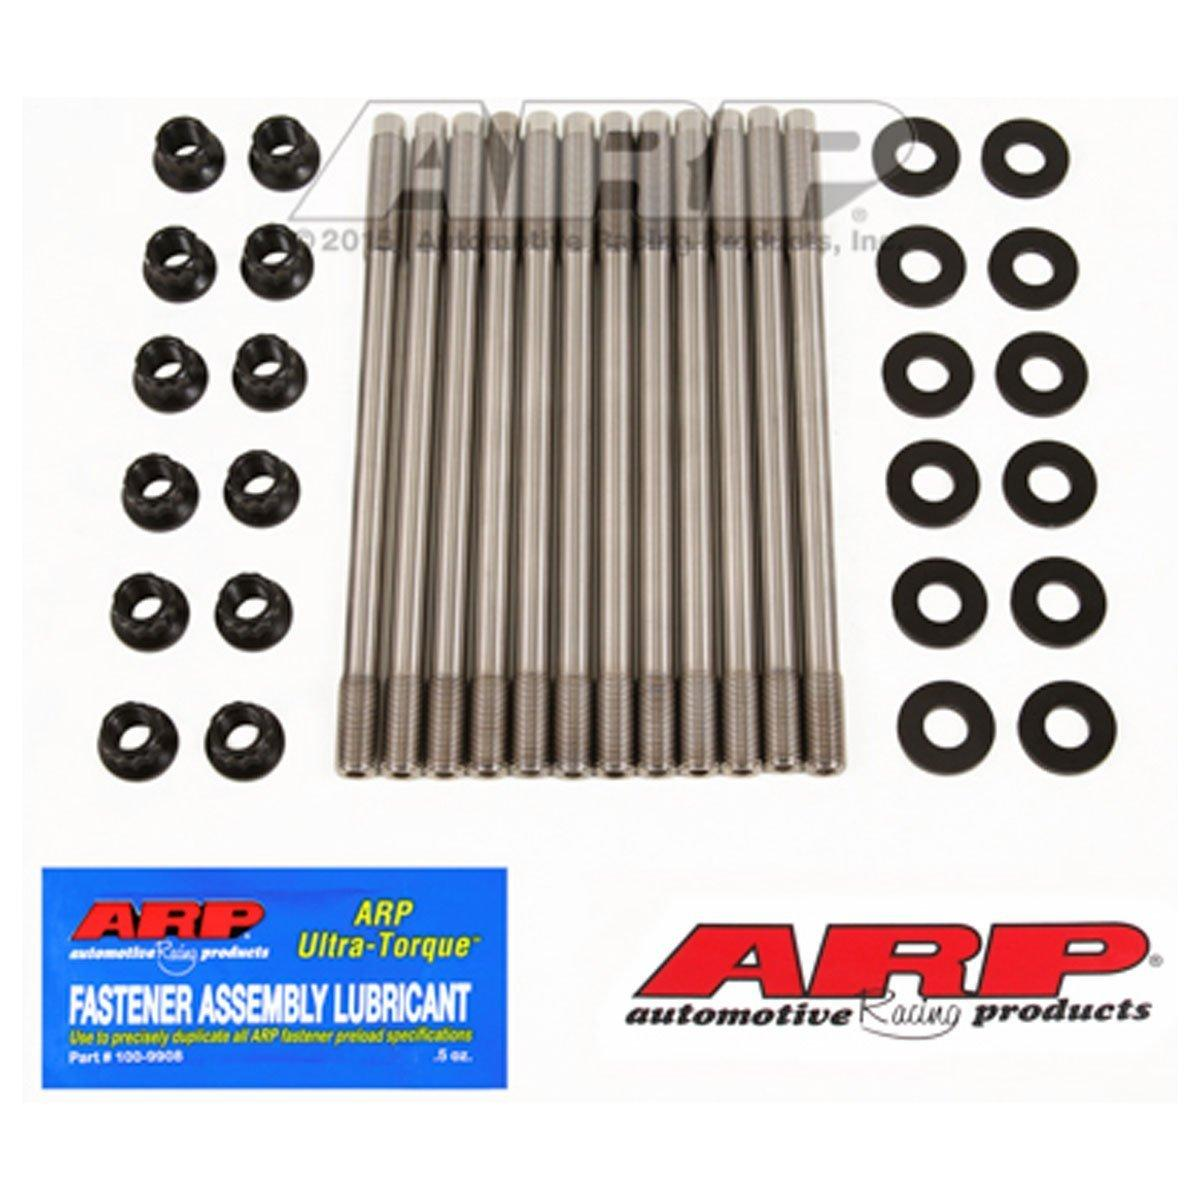 ARP Custom Age 625+ 11mm Head Studs for EJ DOHC Engines